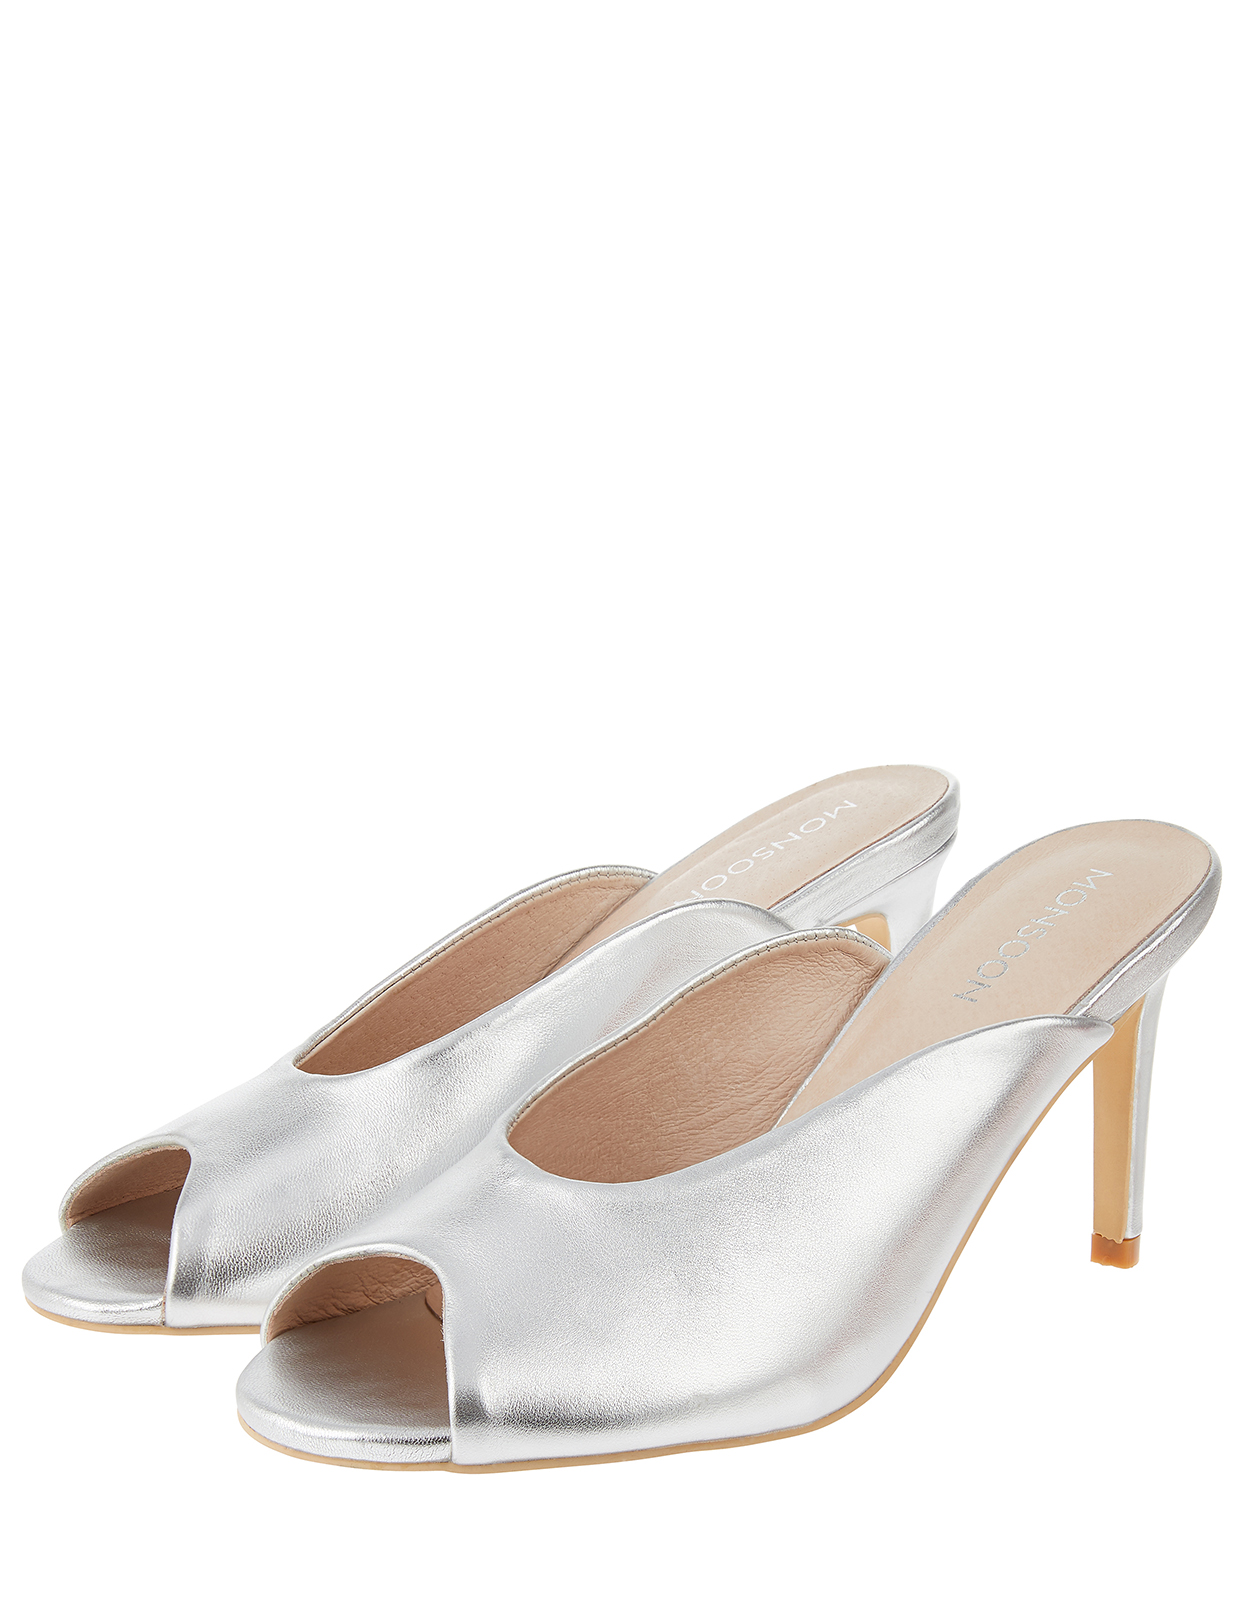 Monsoon Morella Metallic Peep Toe Mules